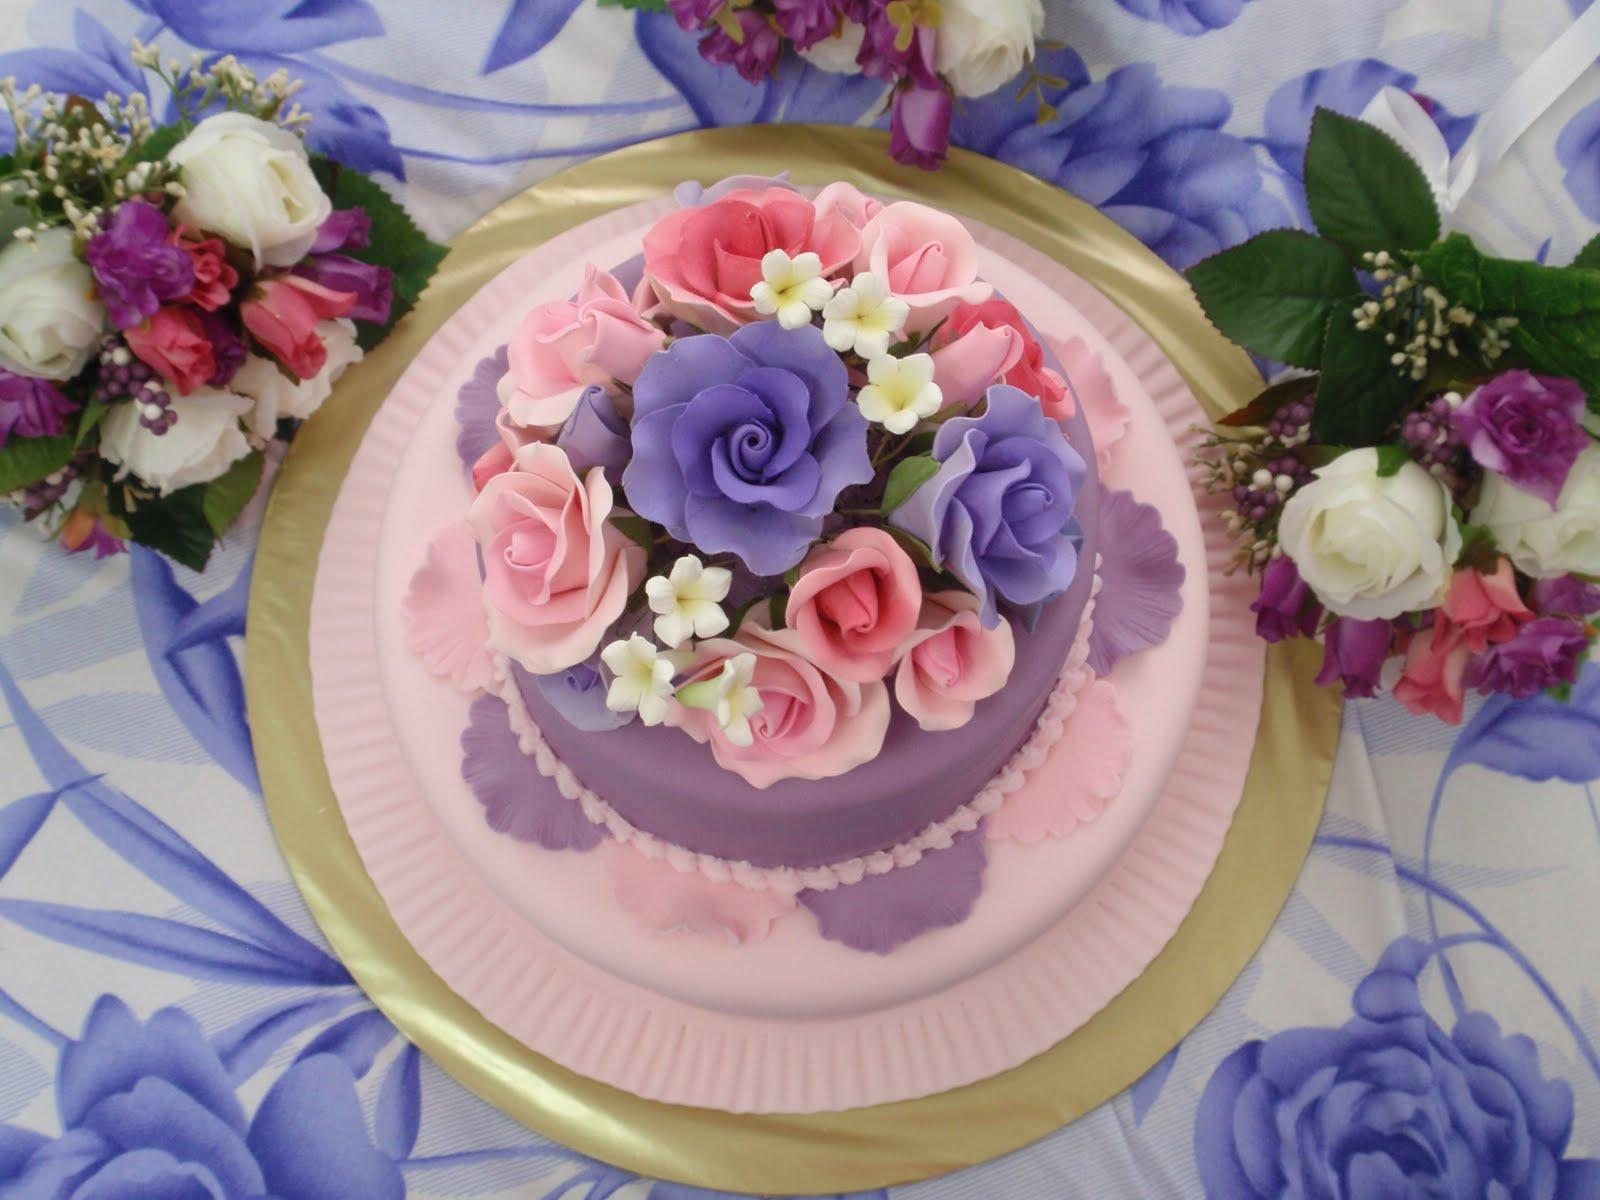 purple fondant 2-tier wedding